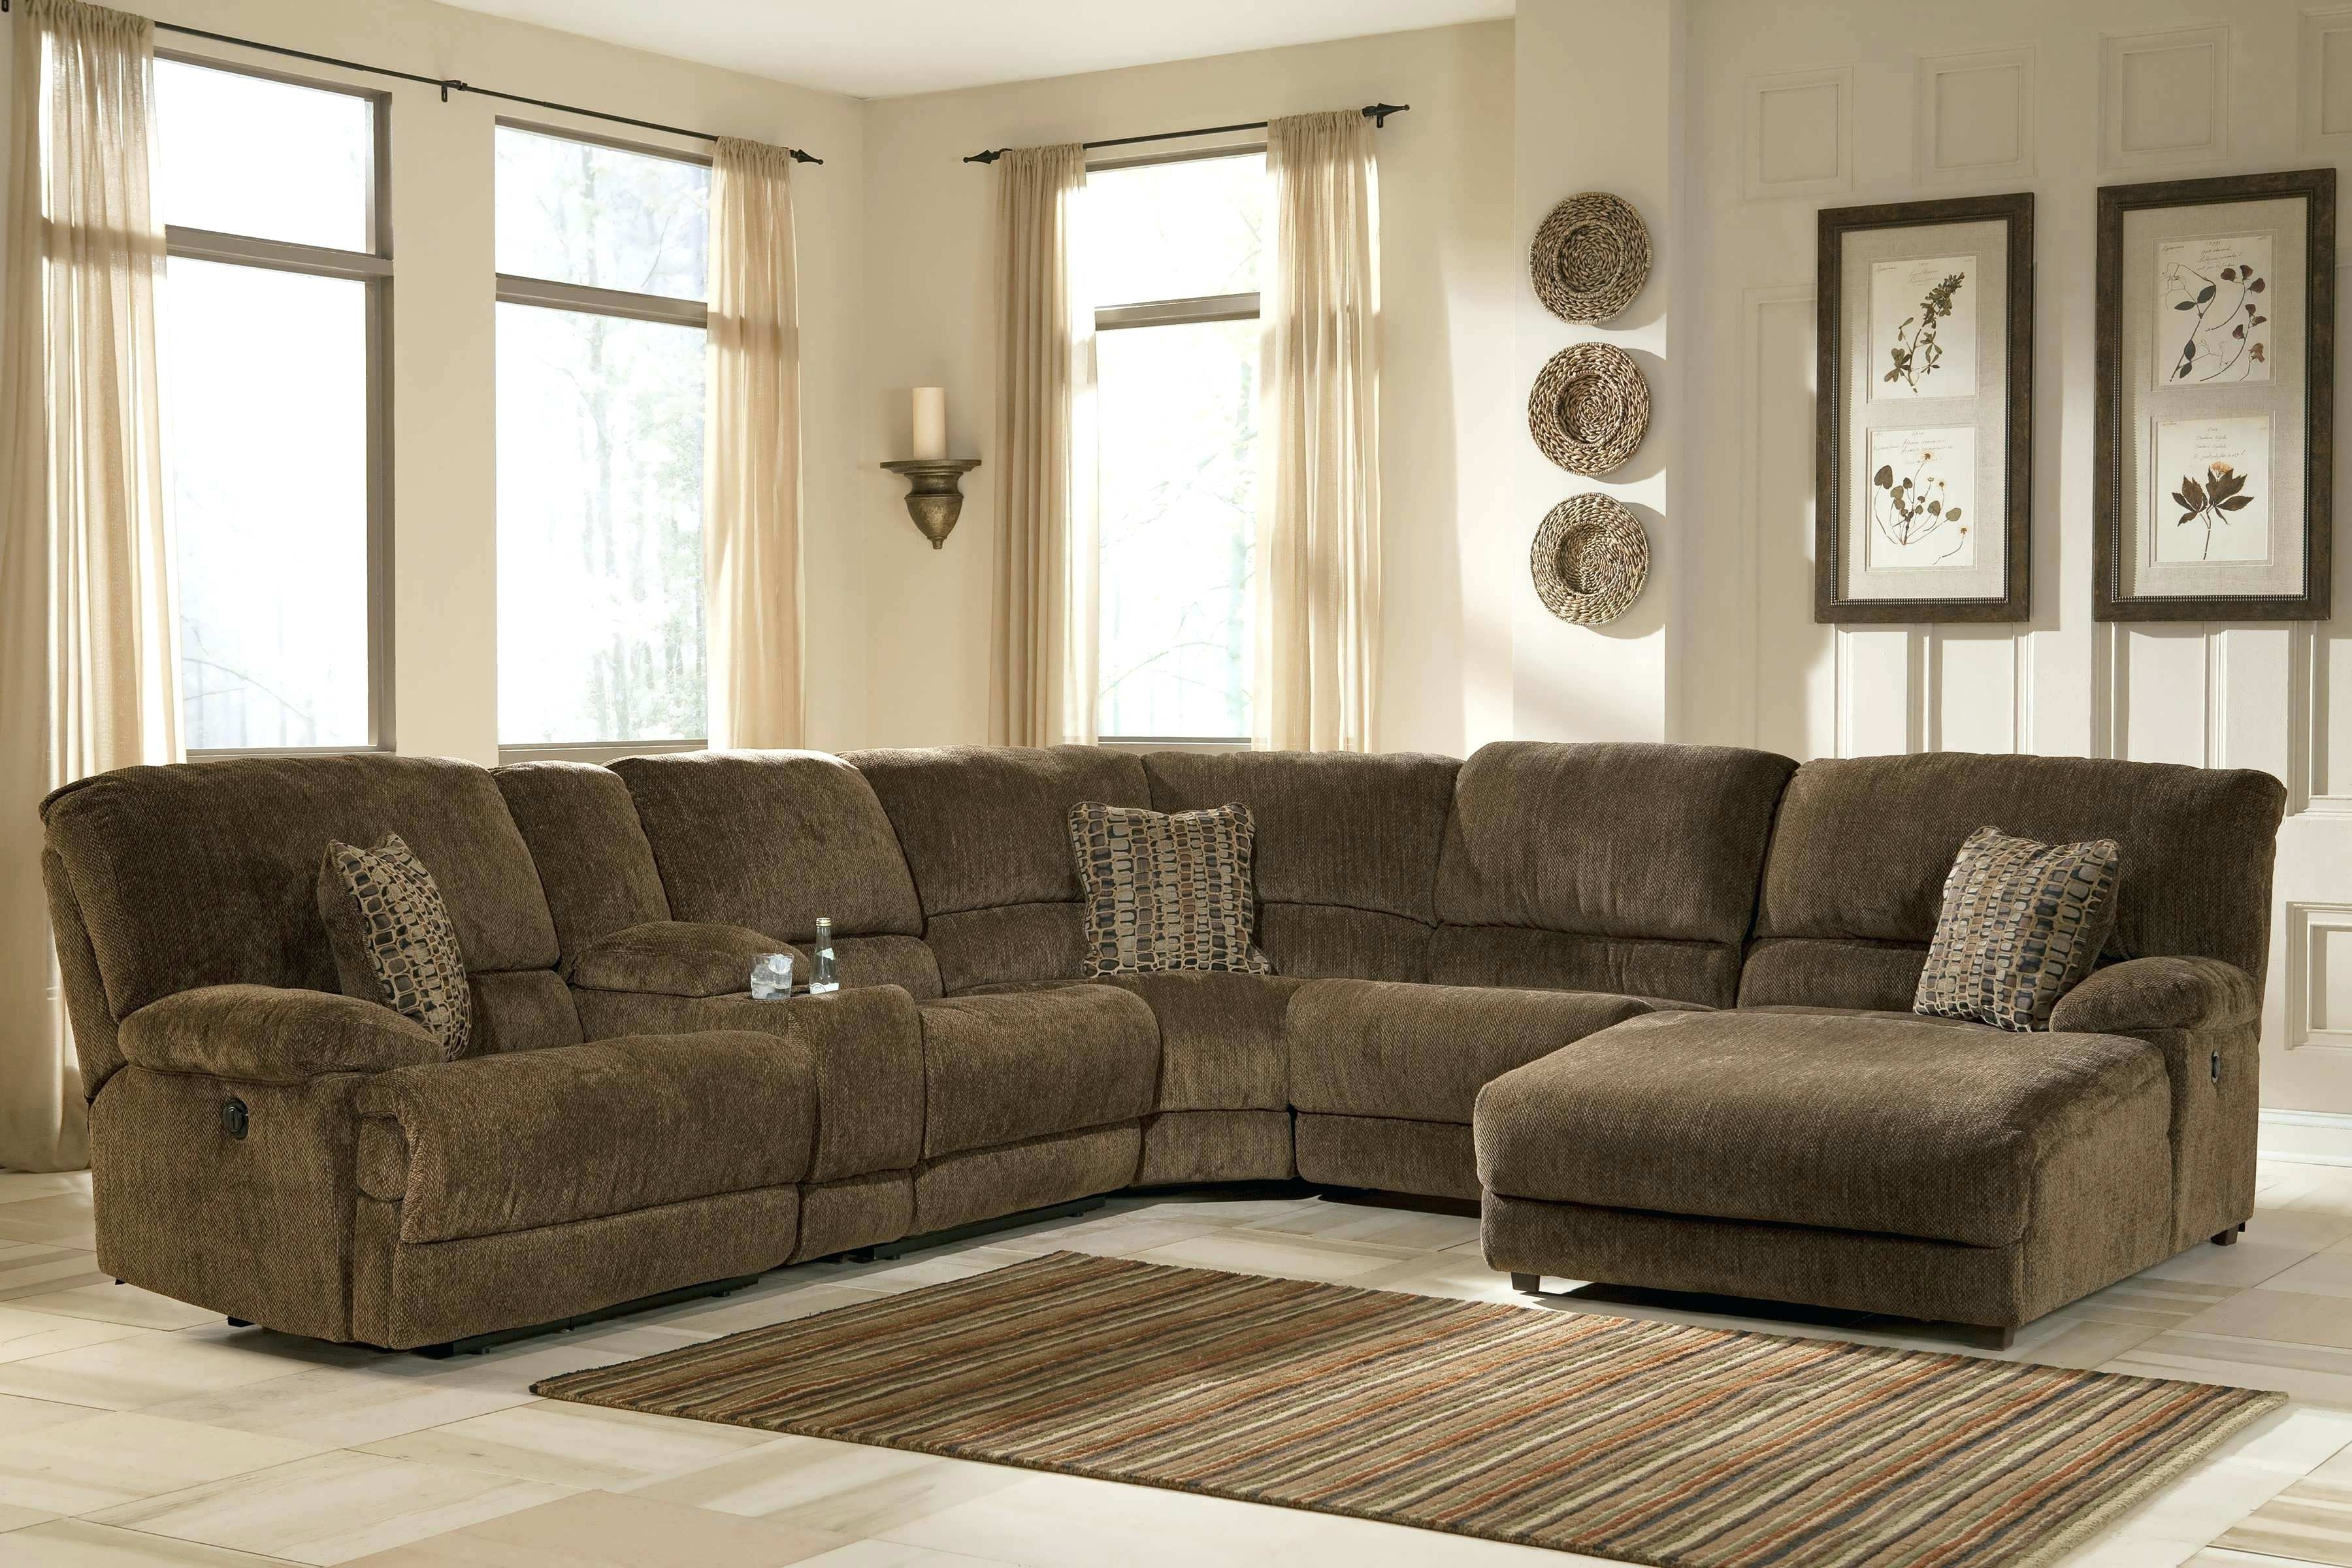 Pottery Barn Seabury Sectional Sofa Turner Leather Reviews Couch In Most Recent Pottery Barn Sectional Sofas (View 9 of 20)